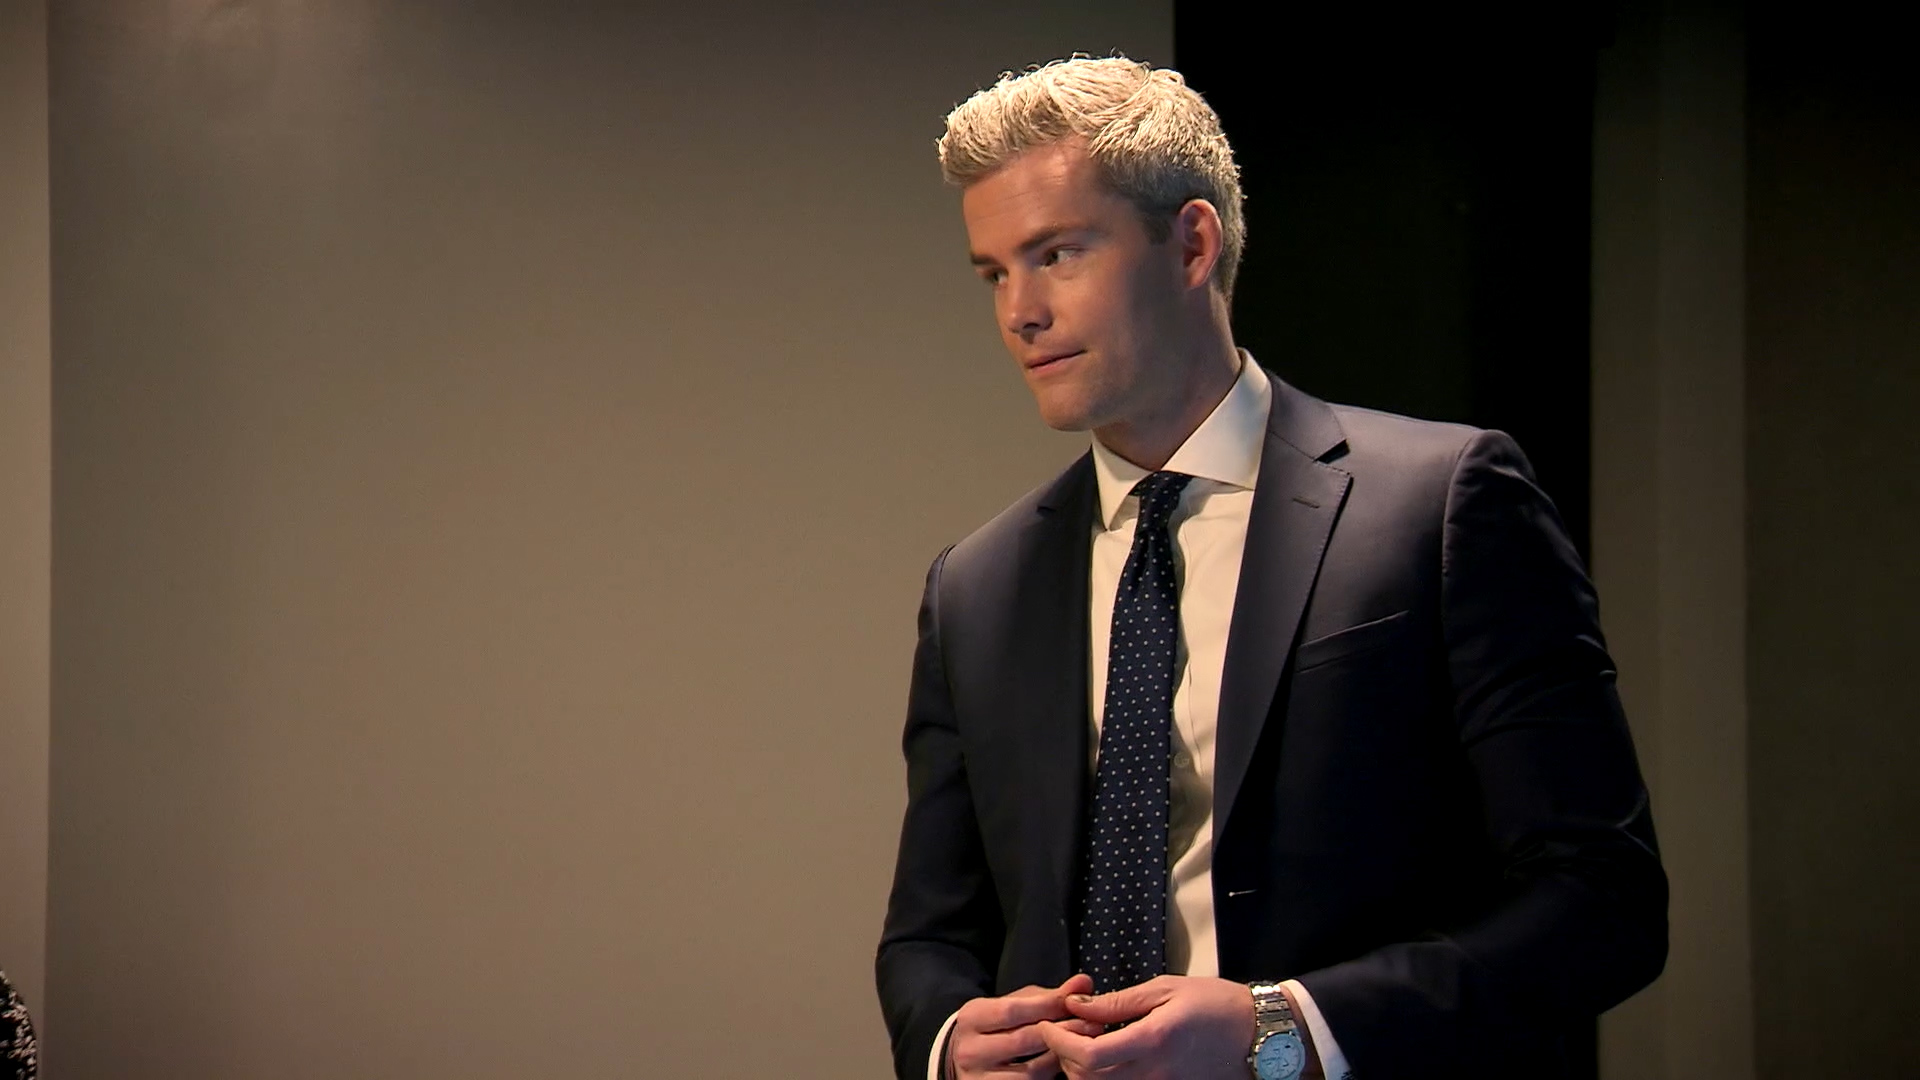 Ryan Serhant Million Dollar Listing NY Season 8